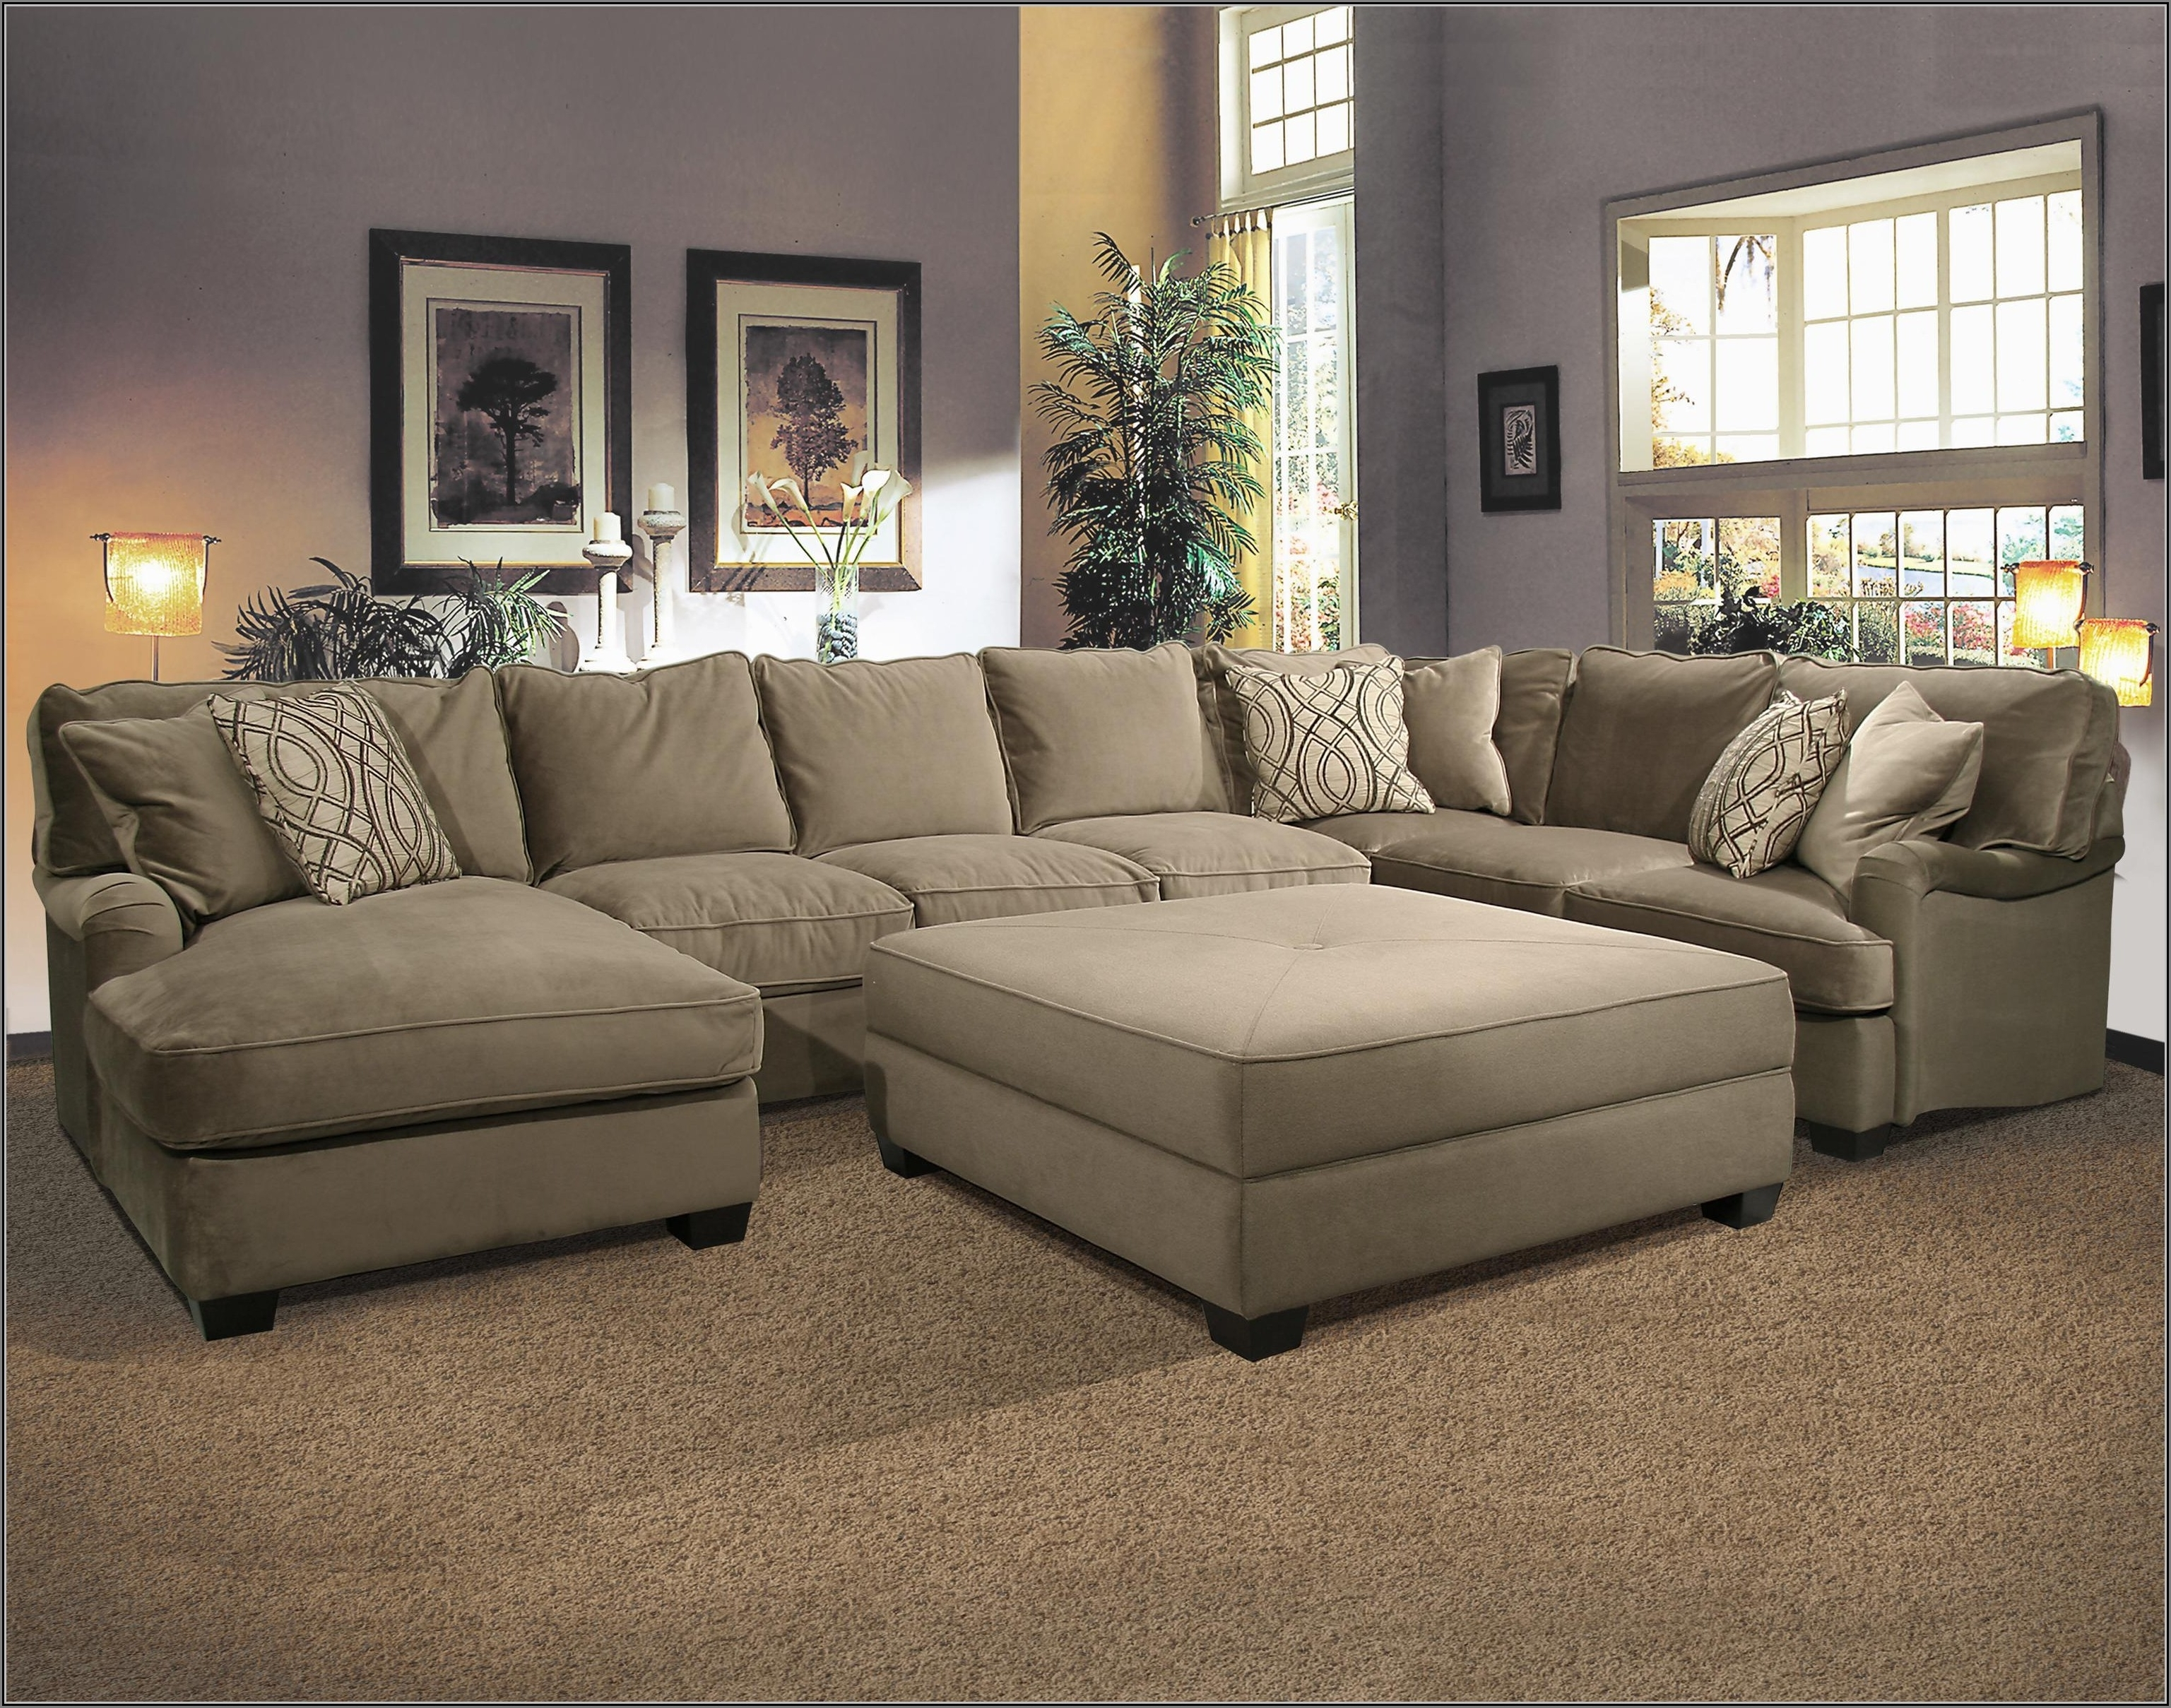 Most Up-to-Date Sectional Sofa With Large Ottoman Hotelsbacau Com Intended For in Sofas With Large Ottoman